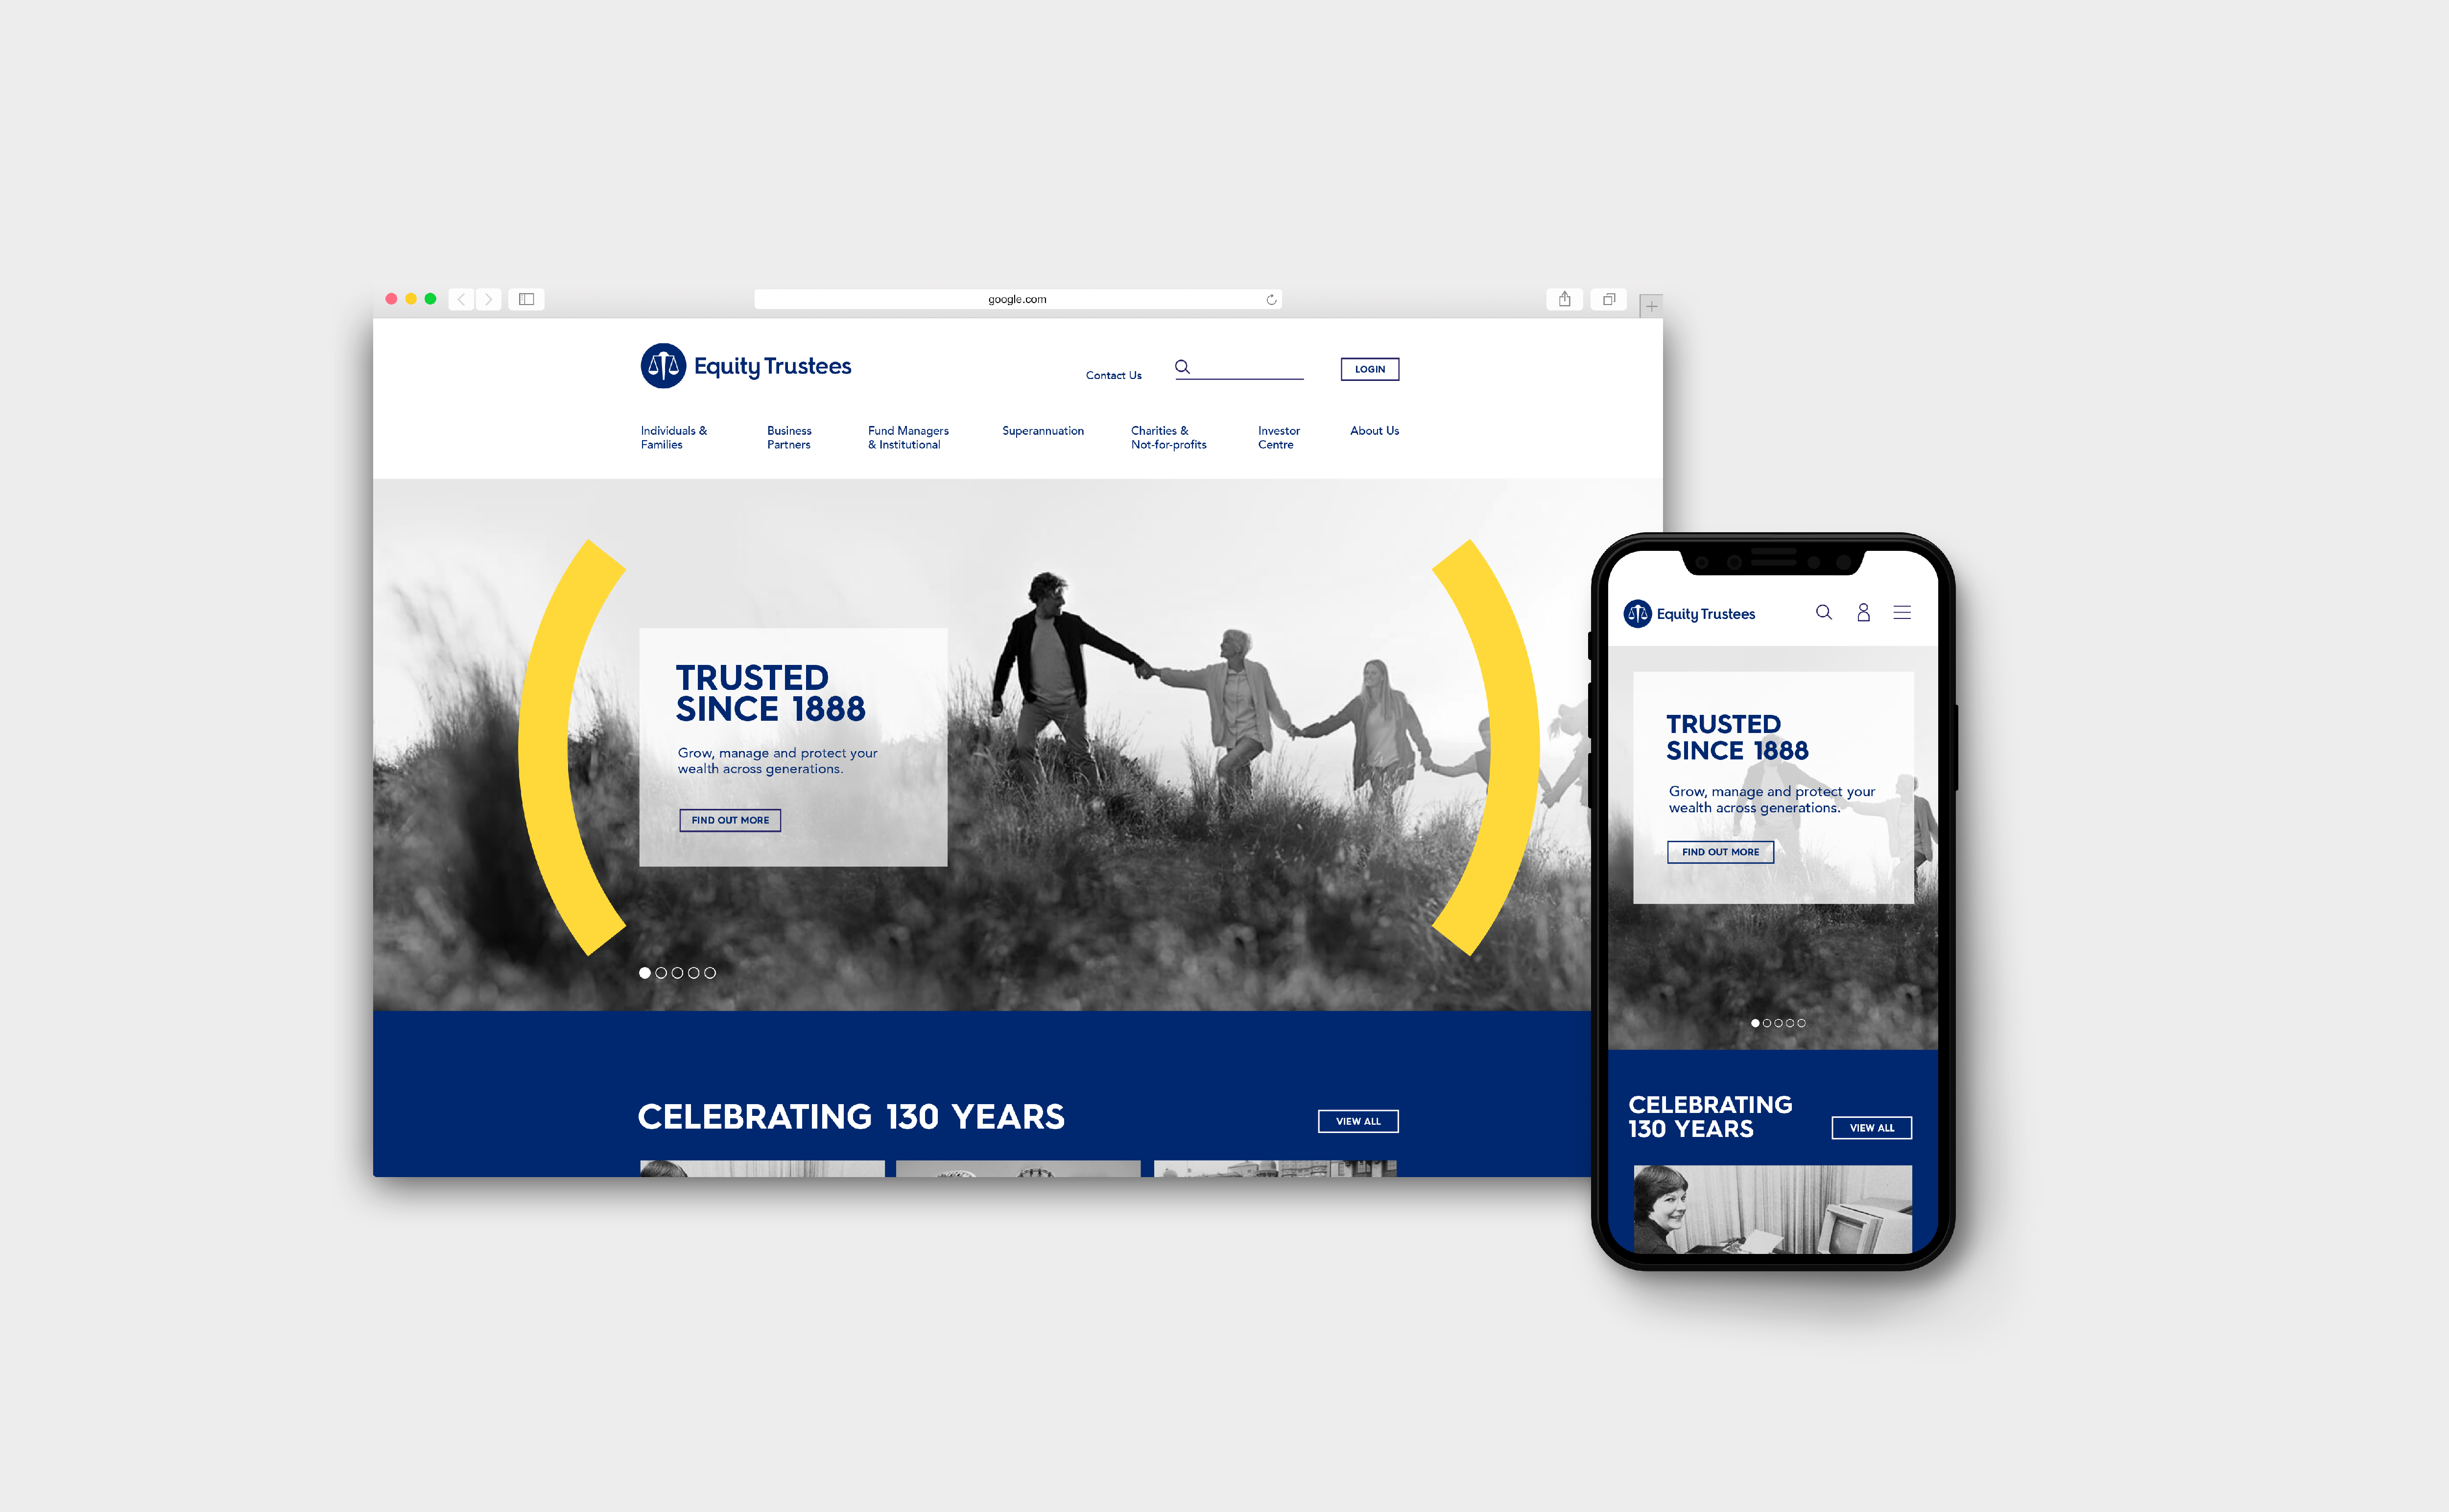 Equity Trustees - Desktop and mobile view of new branding applied to digital assets